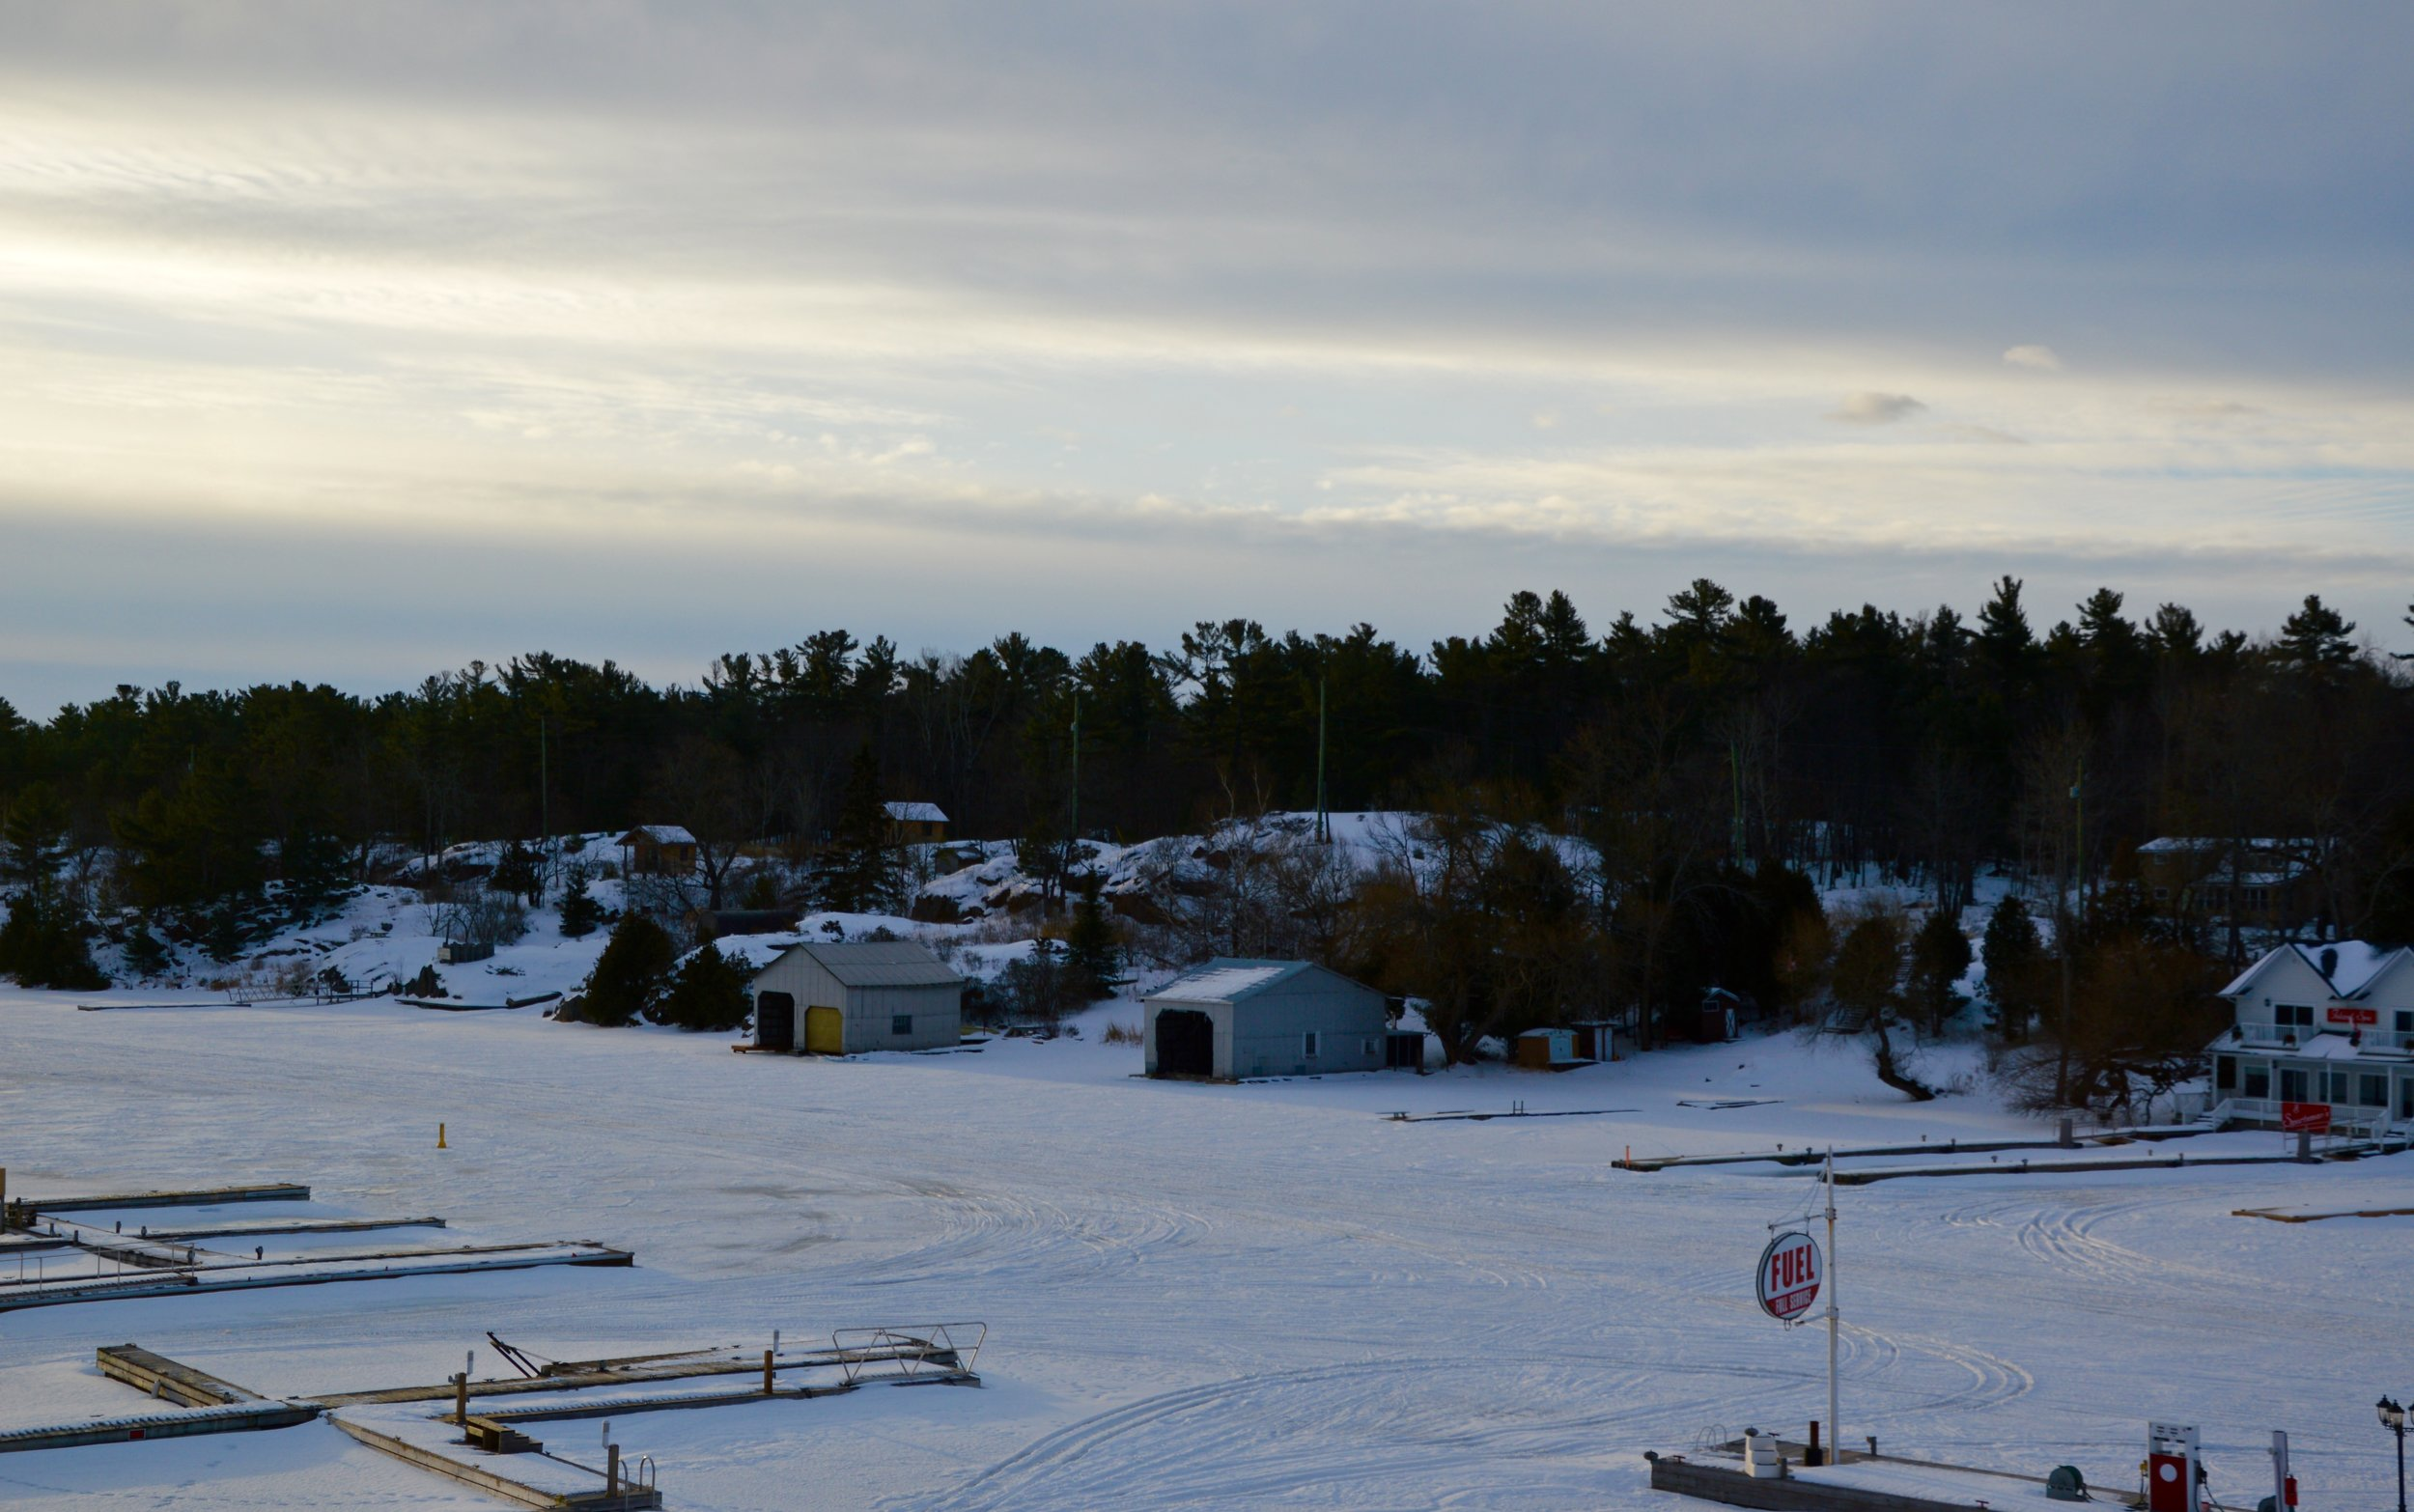 The views from our room at the Sportsman's Inn offered lovely views of the snow covered boat docks.